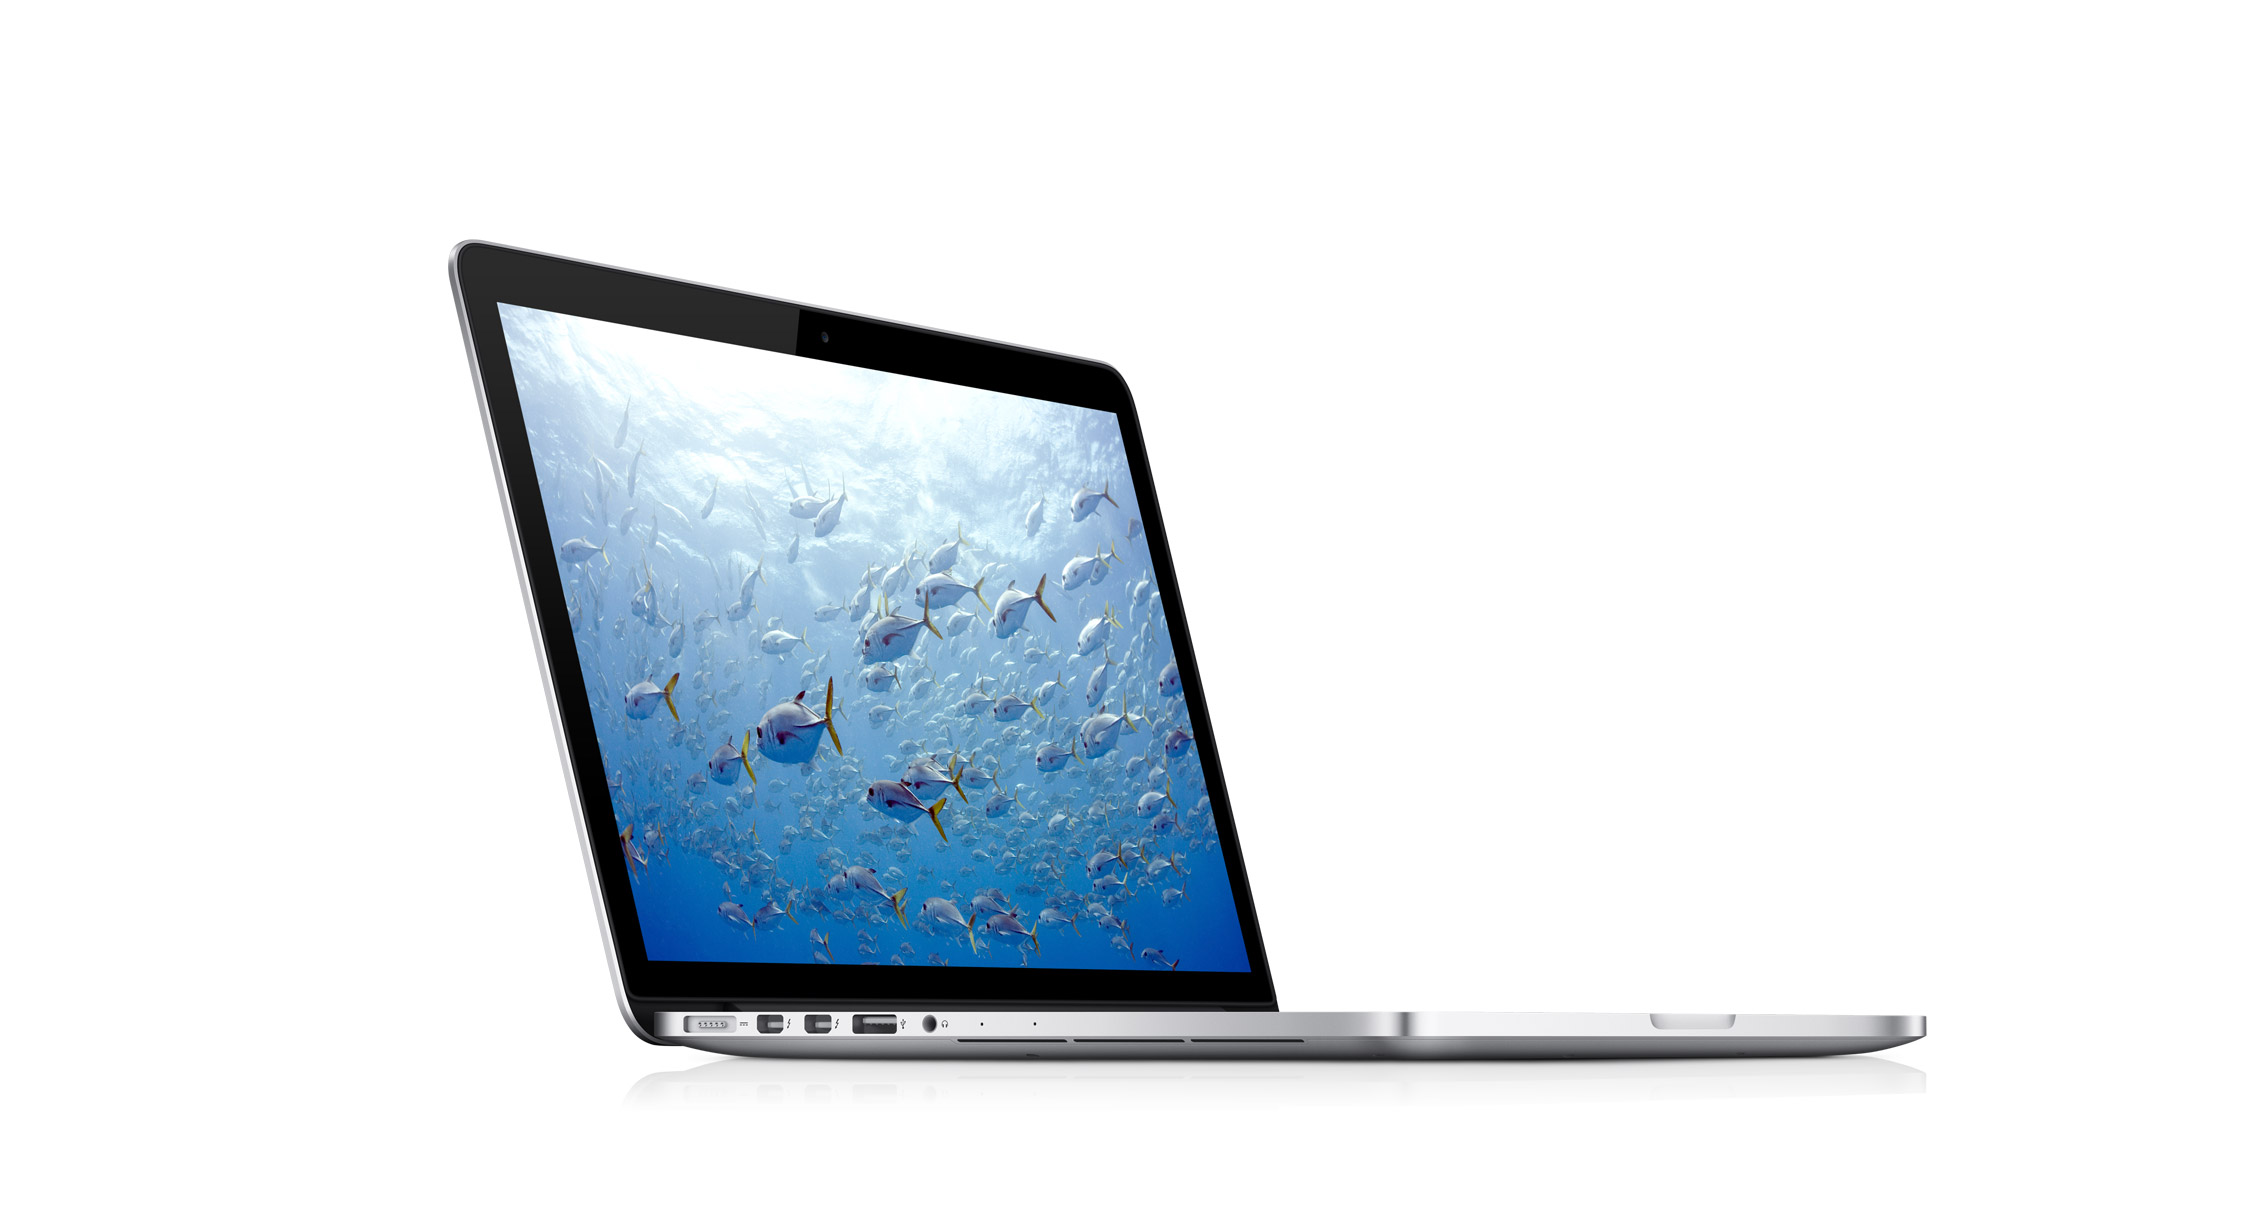 MacBook Air 11-inch: 128GB